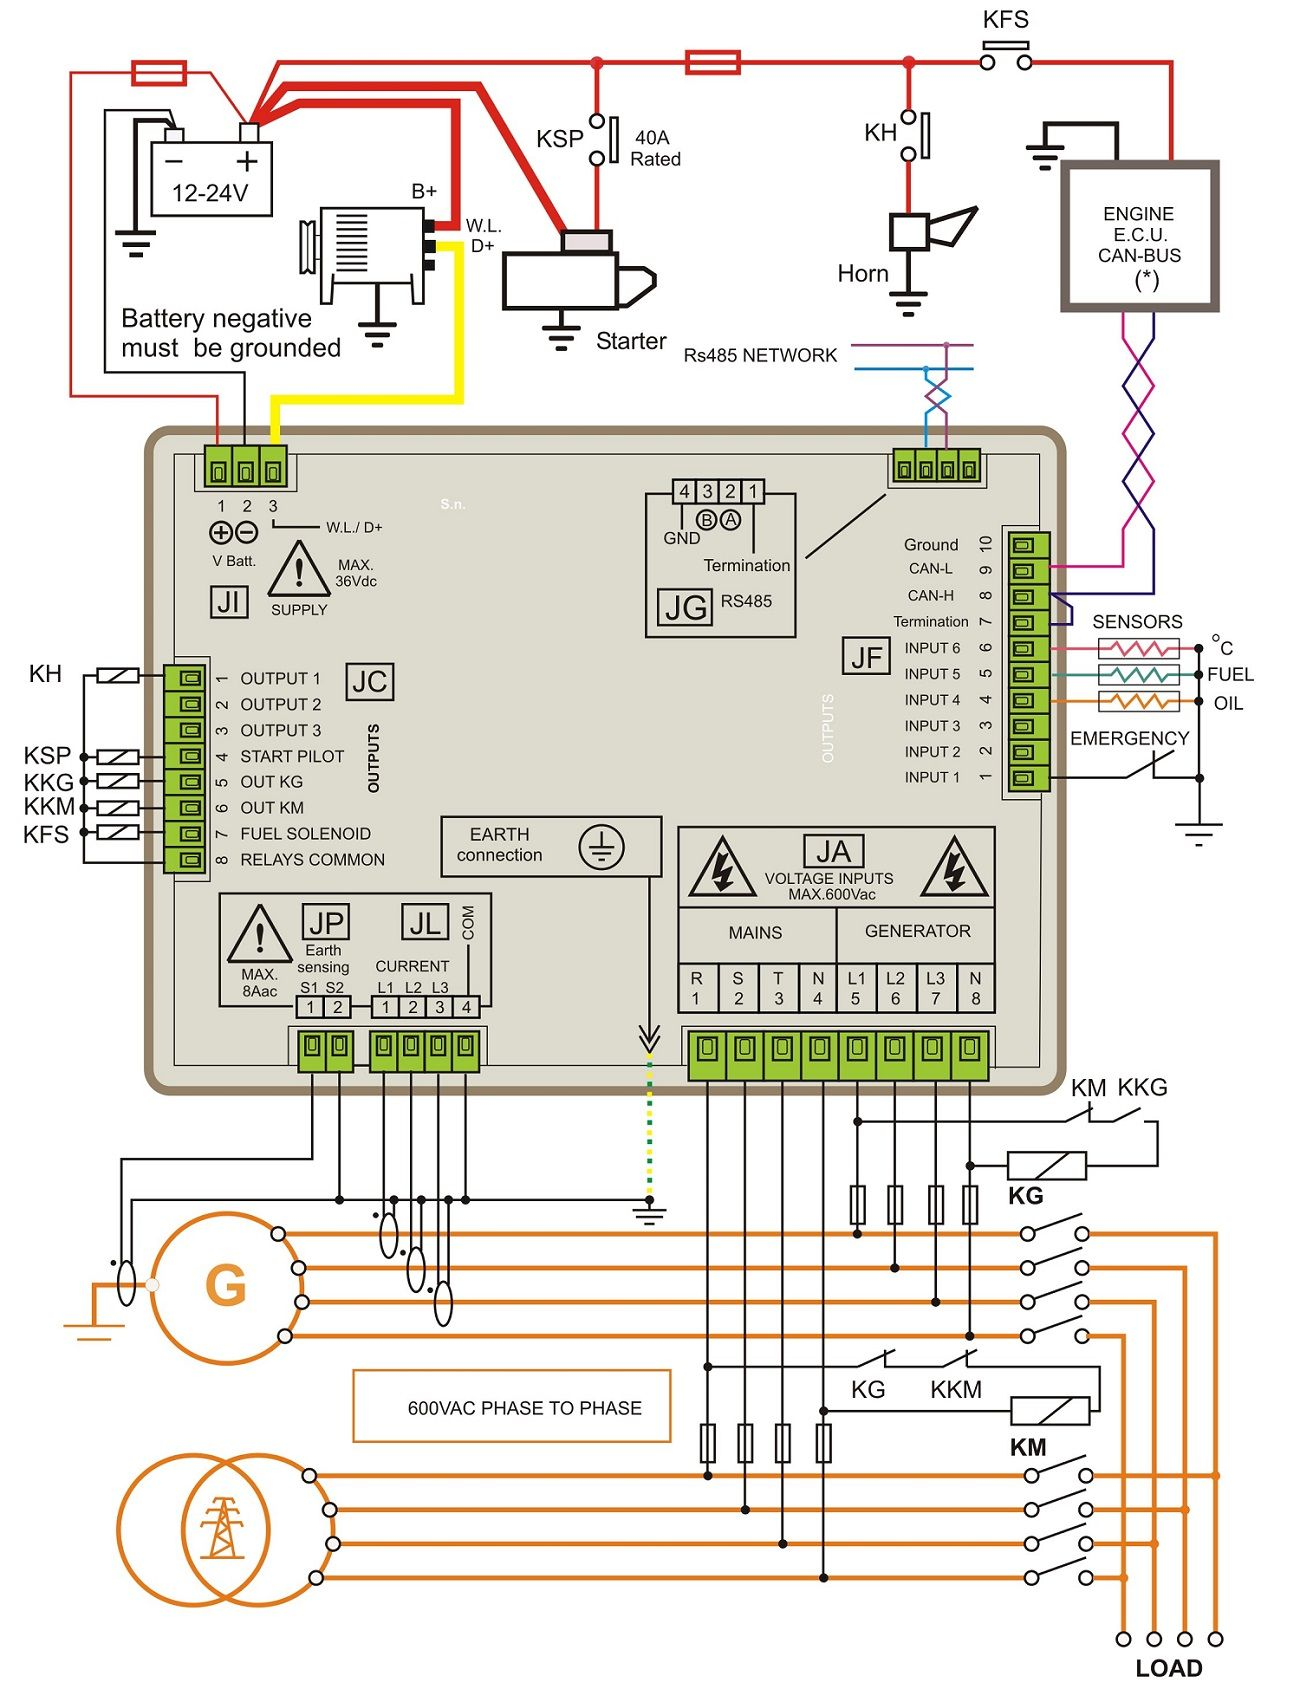 medium resolution of rh2b u relay wiring diagram electrical wiring diagram rh2b u relay wiring diagram